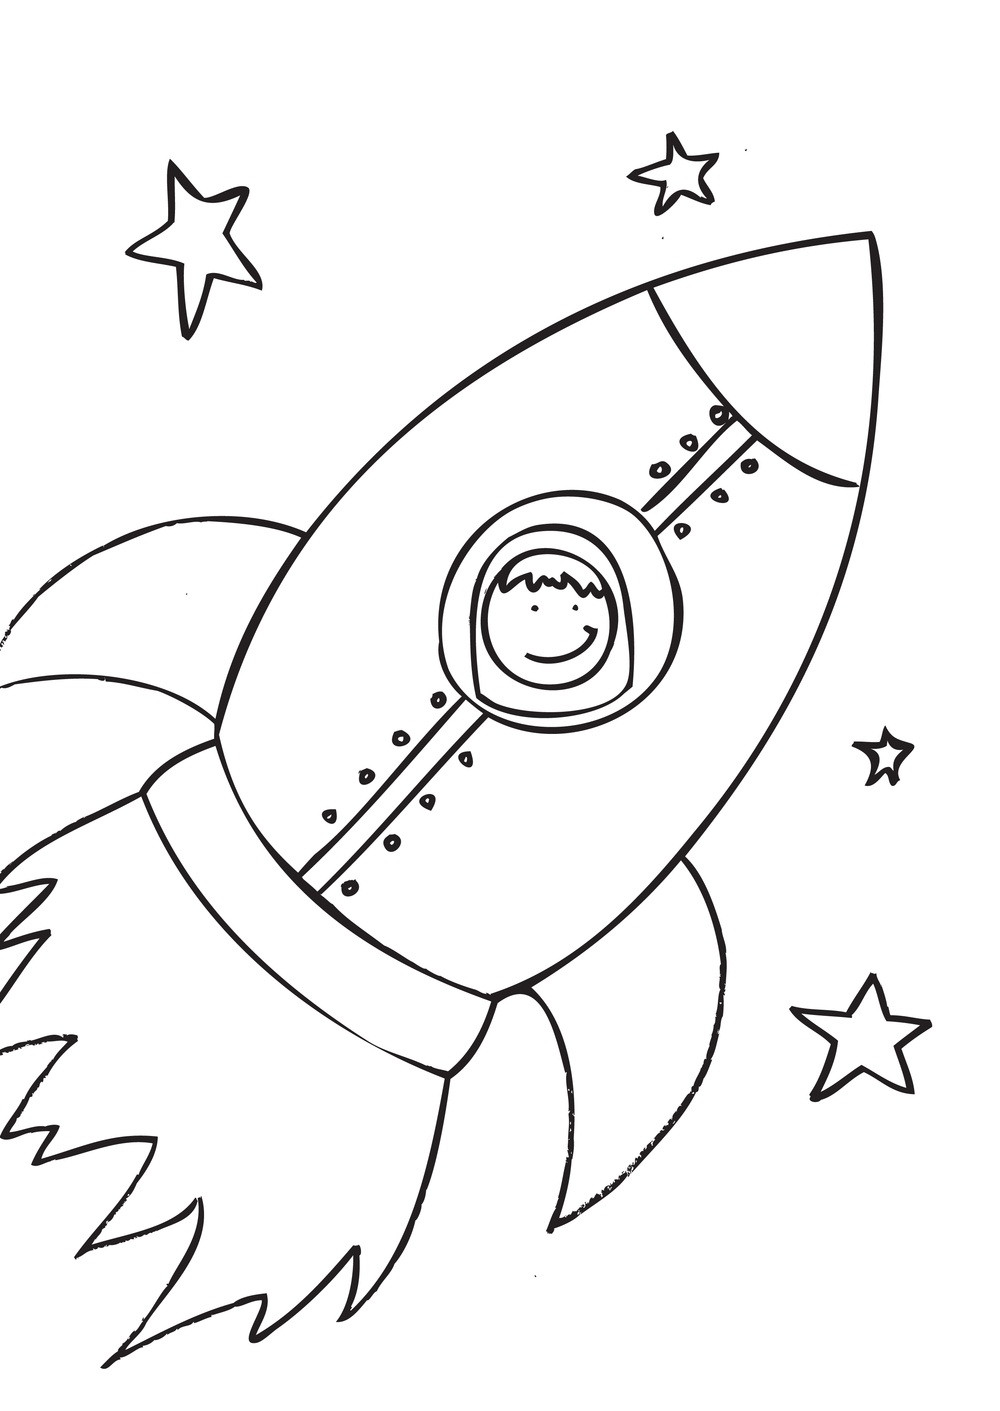 Free Coloring Sheets Space Ship  Free Printable Rocket Ship Coloring Pages For Kids